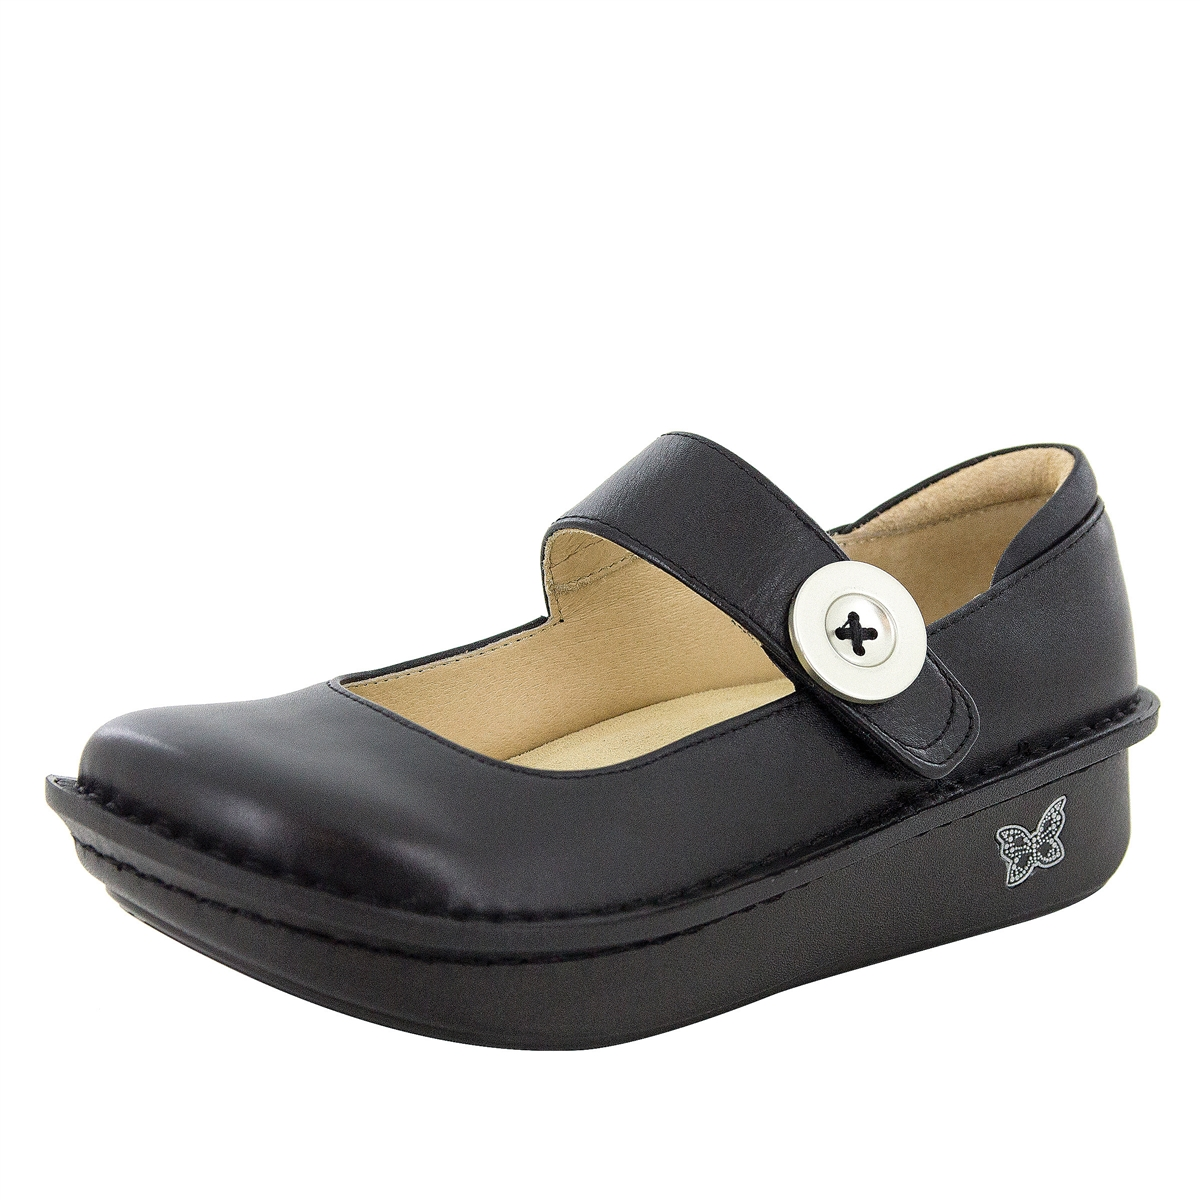 How Wide Are Alegria Shoes